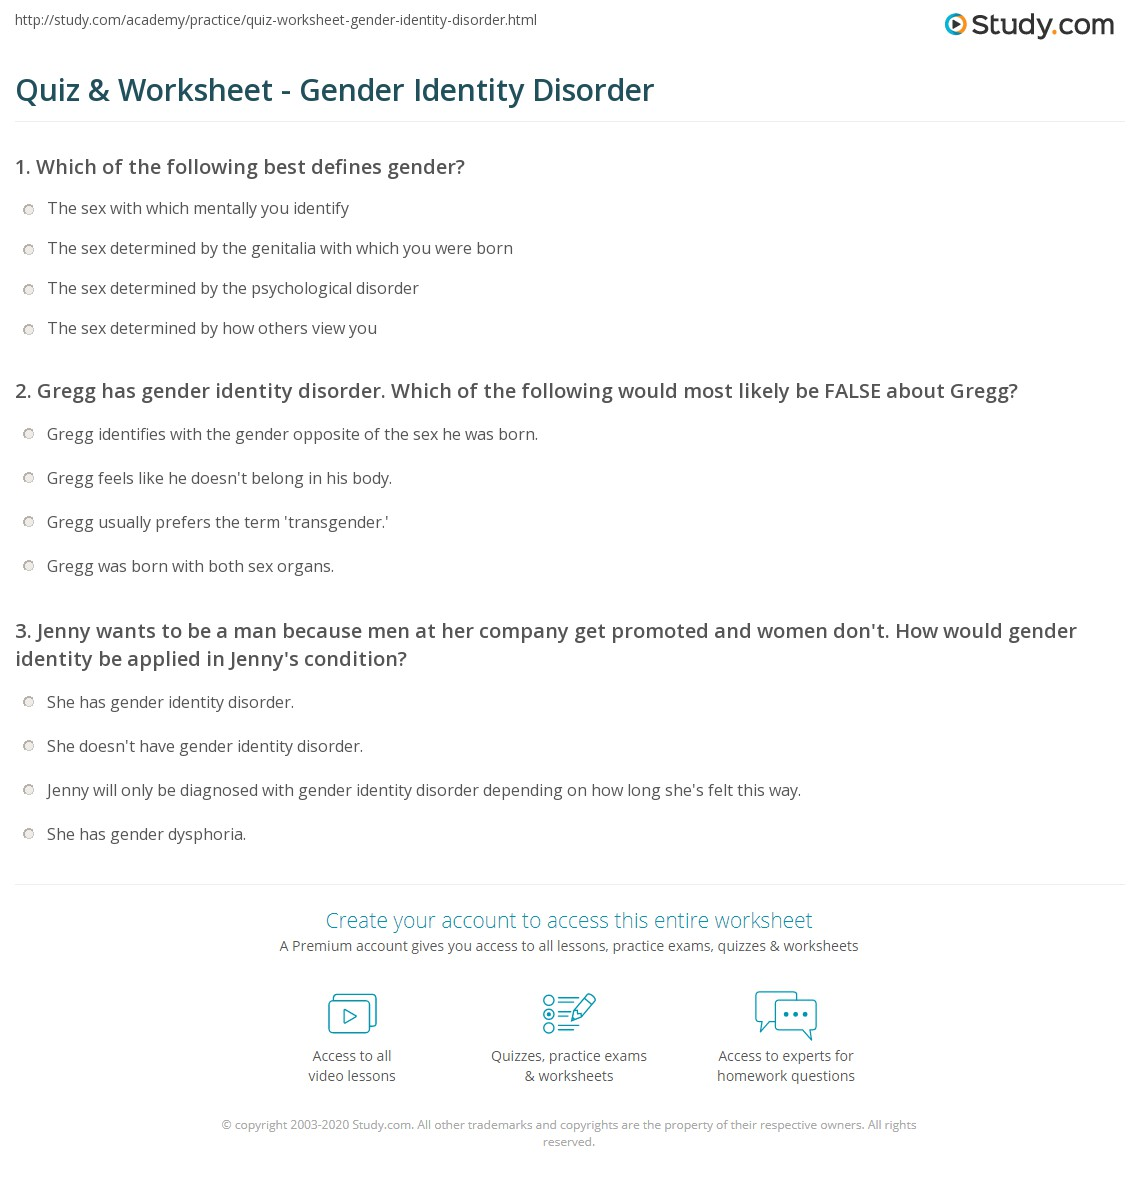 quiz worksheet gender identity disorder. Black Bedroom Furniture Sets. Home Design Ideas